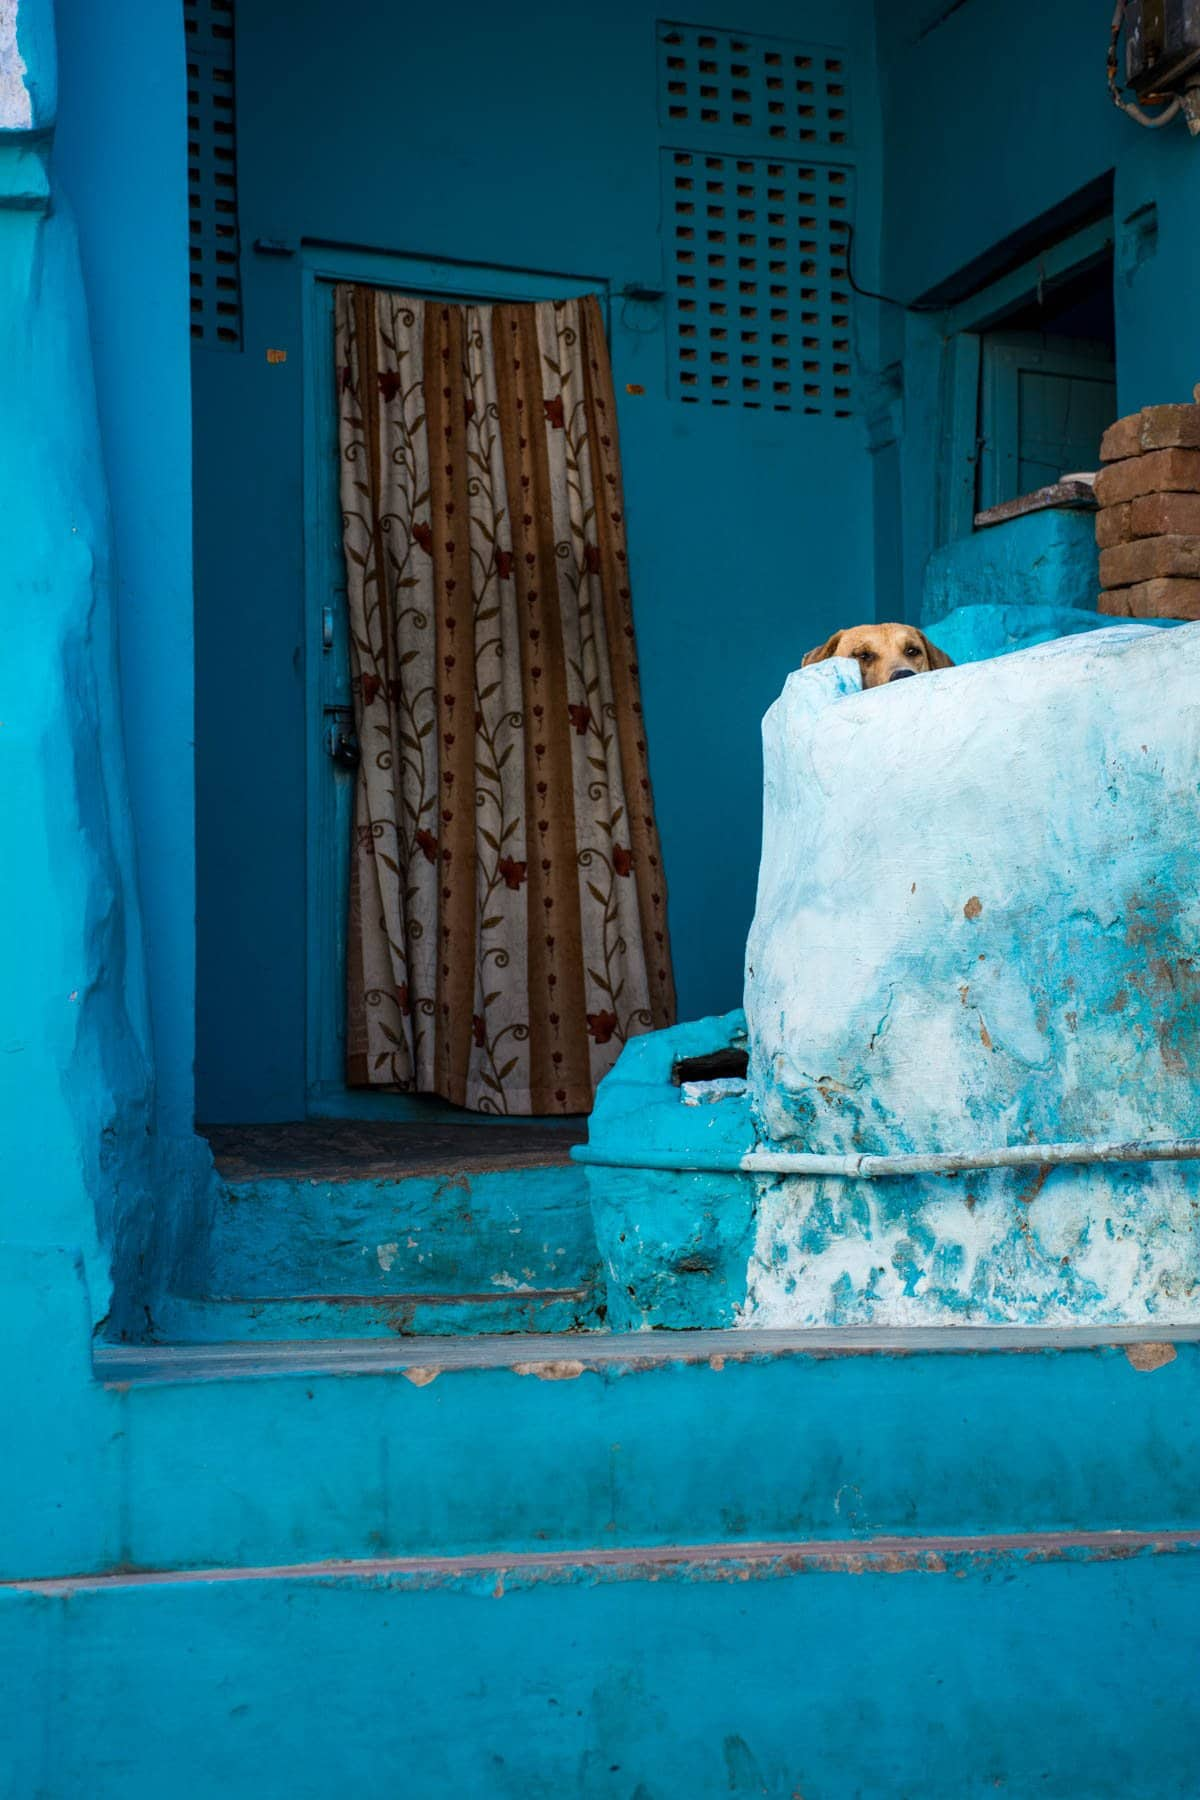 Photo essay about the streets and people of the Blue City of Jodhpur, Rajasthan, India - A dog on a blue stoop - Lost With Purpose